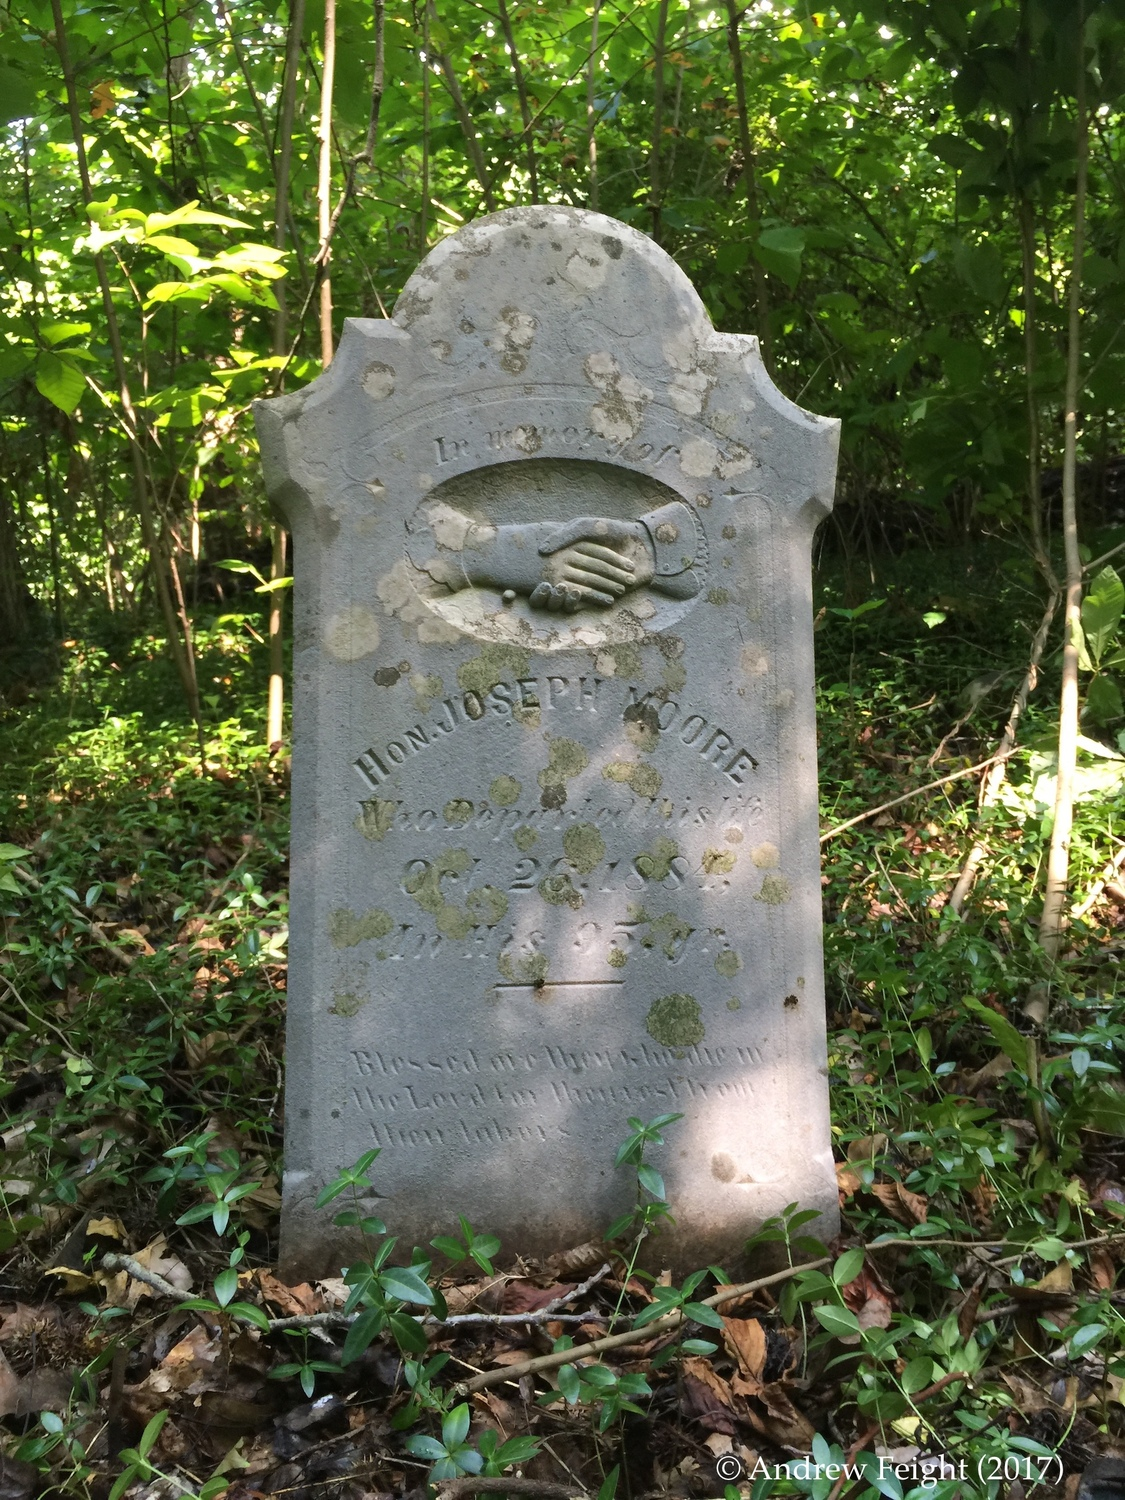 Headstone of Judge Joseph Moore, Mitchell-Morrison Cemetery, Shawnee State Forest, Scioto County, Ohio.